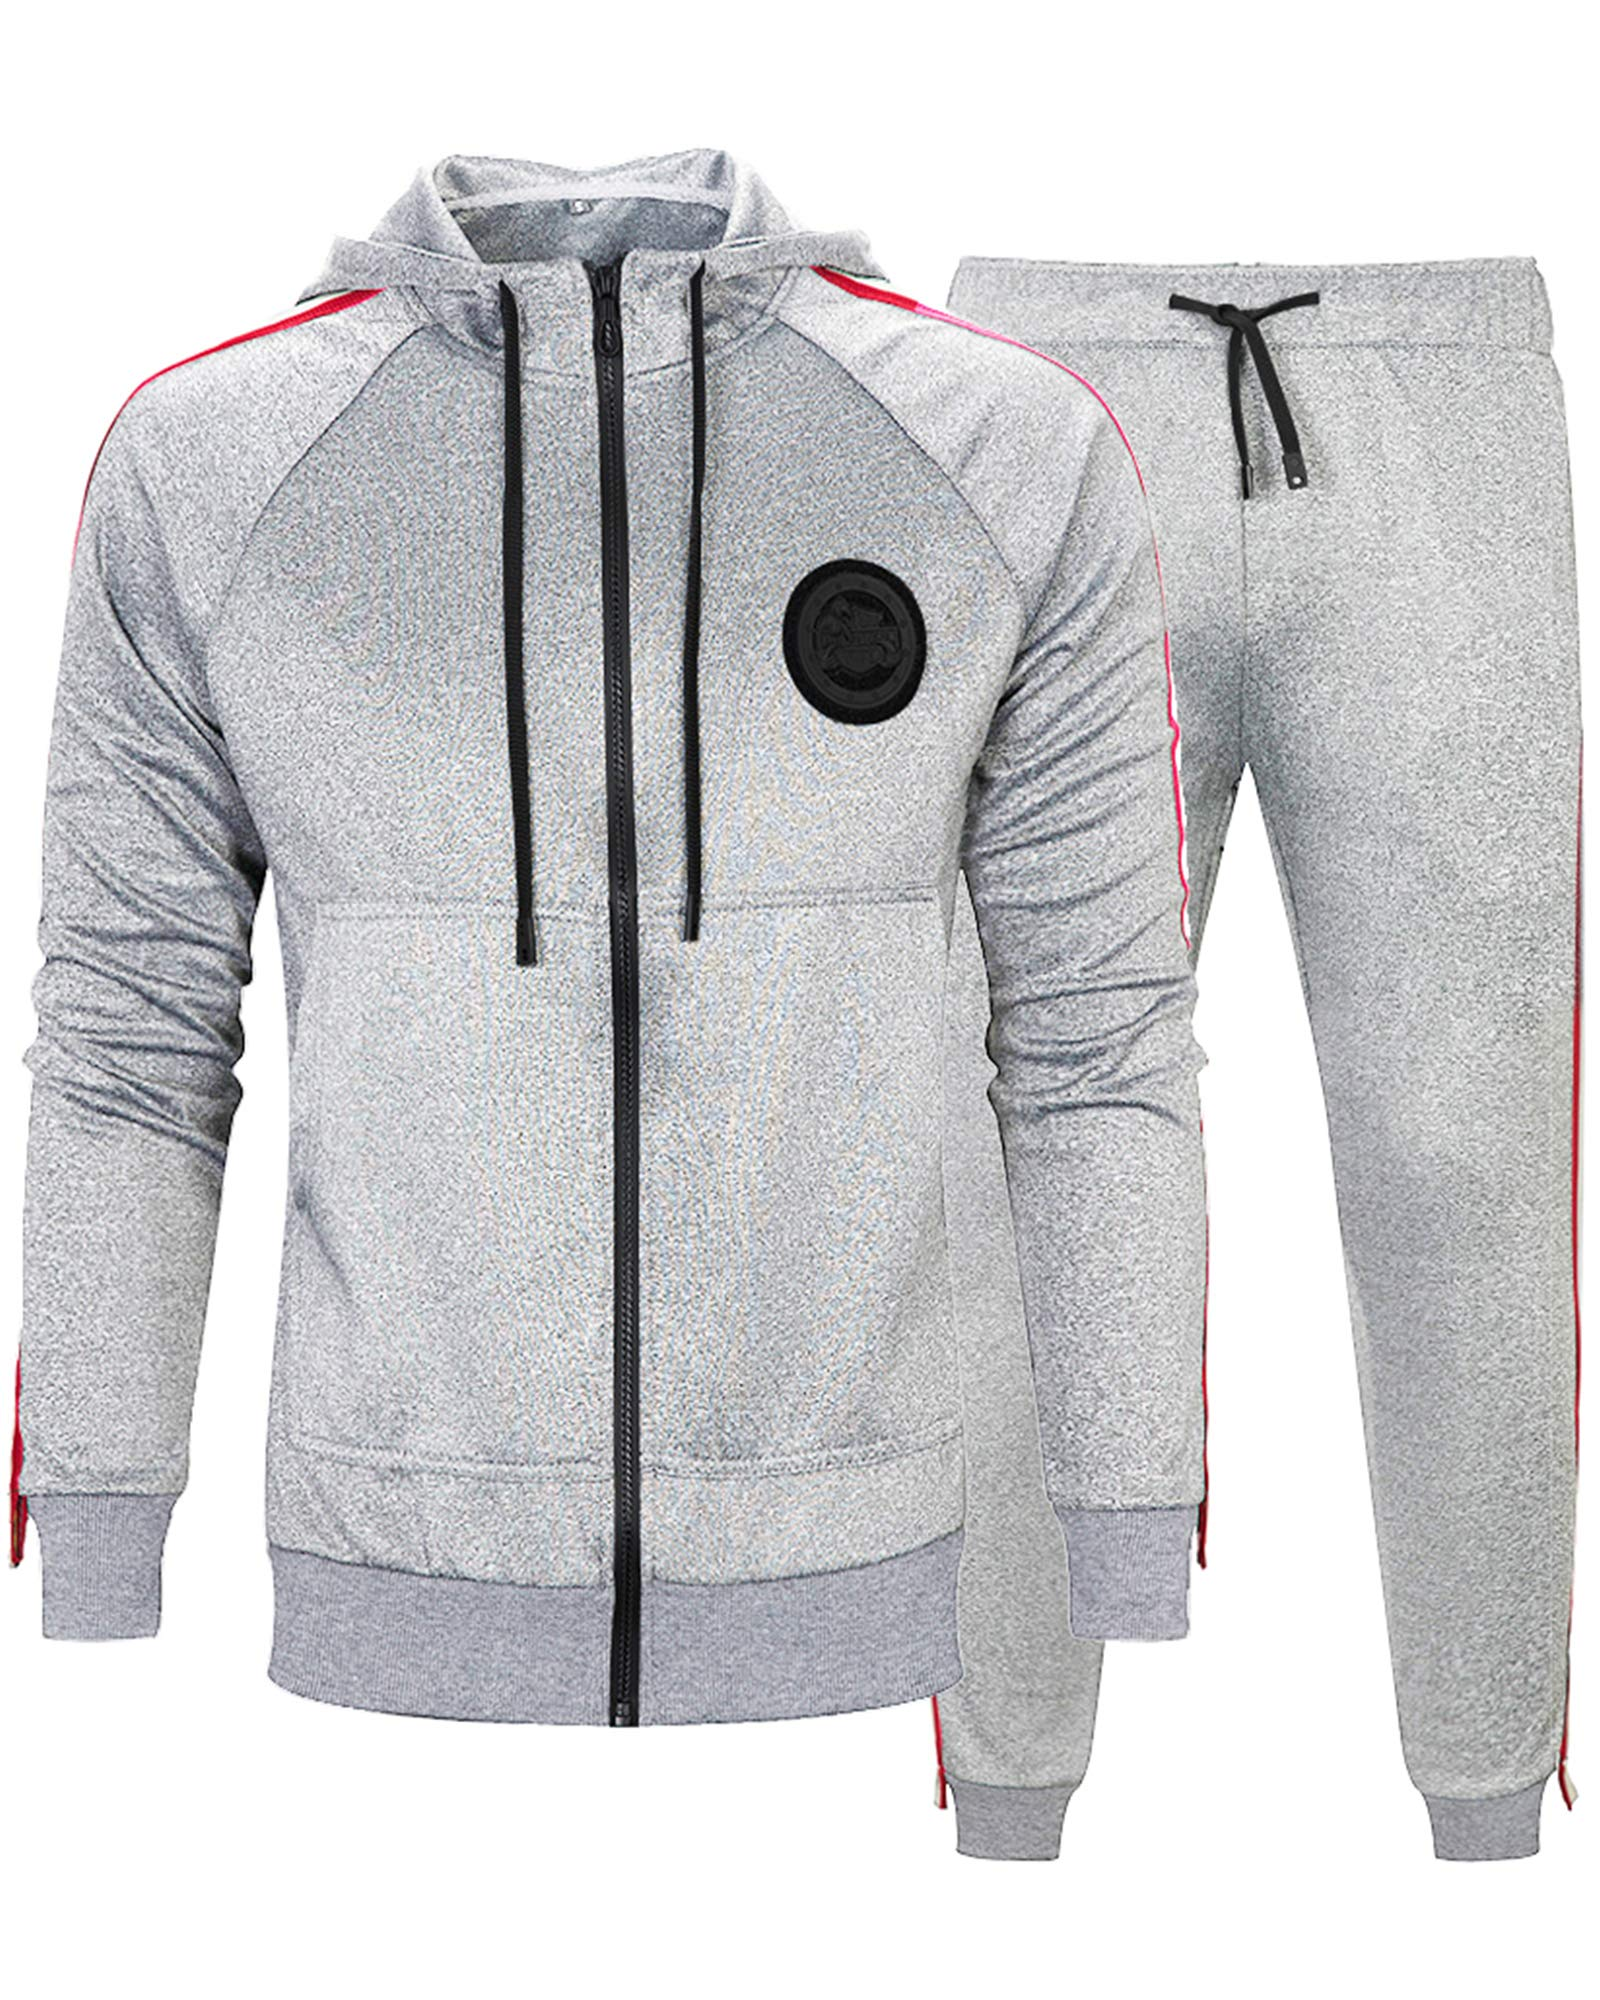 MACHLAB Men's Activewear Sports Jogging Sweat Suits Running TracksuitLight Gray M